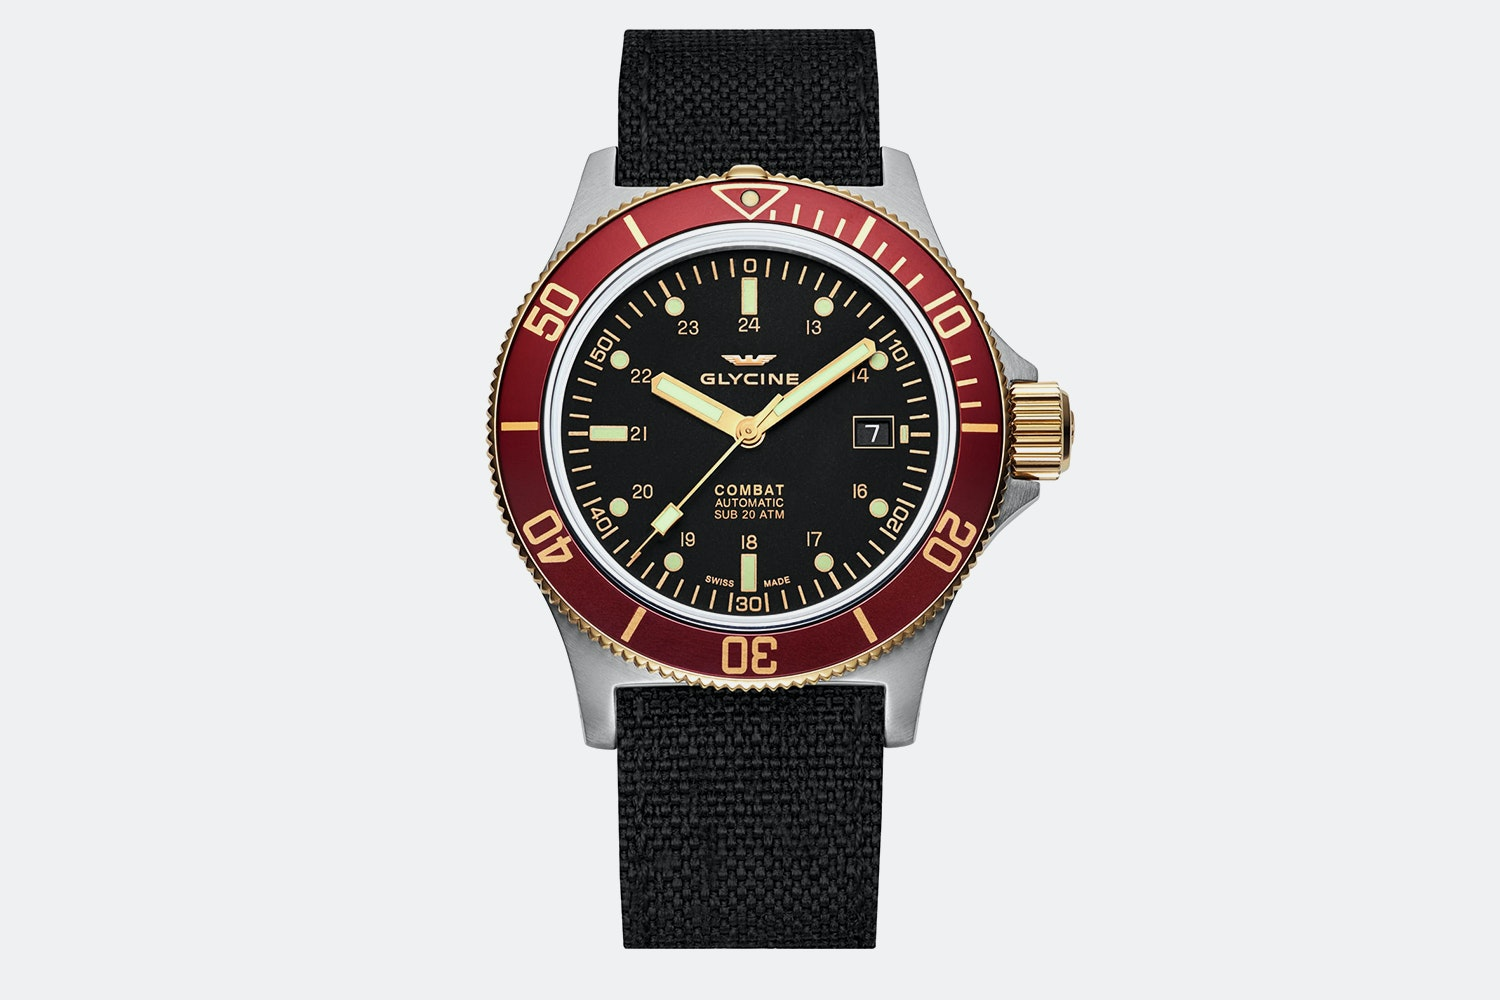 GL0092 | Black Dial, Red Bezel, Black Fabric Strap